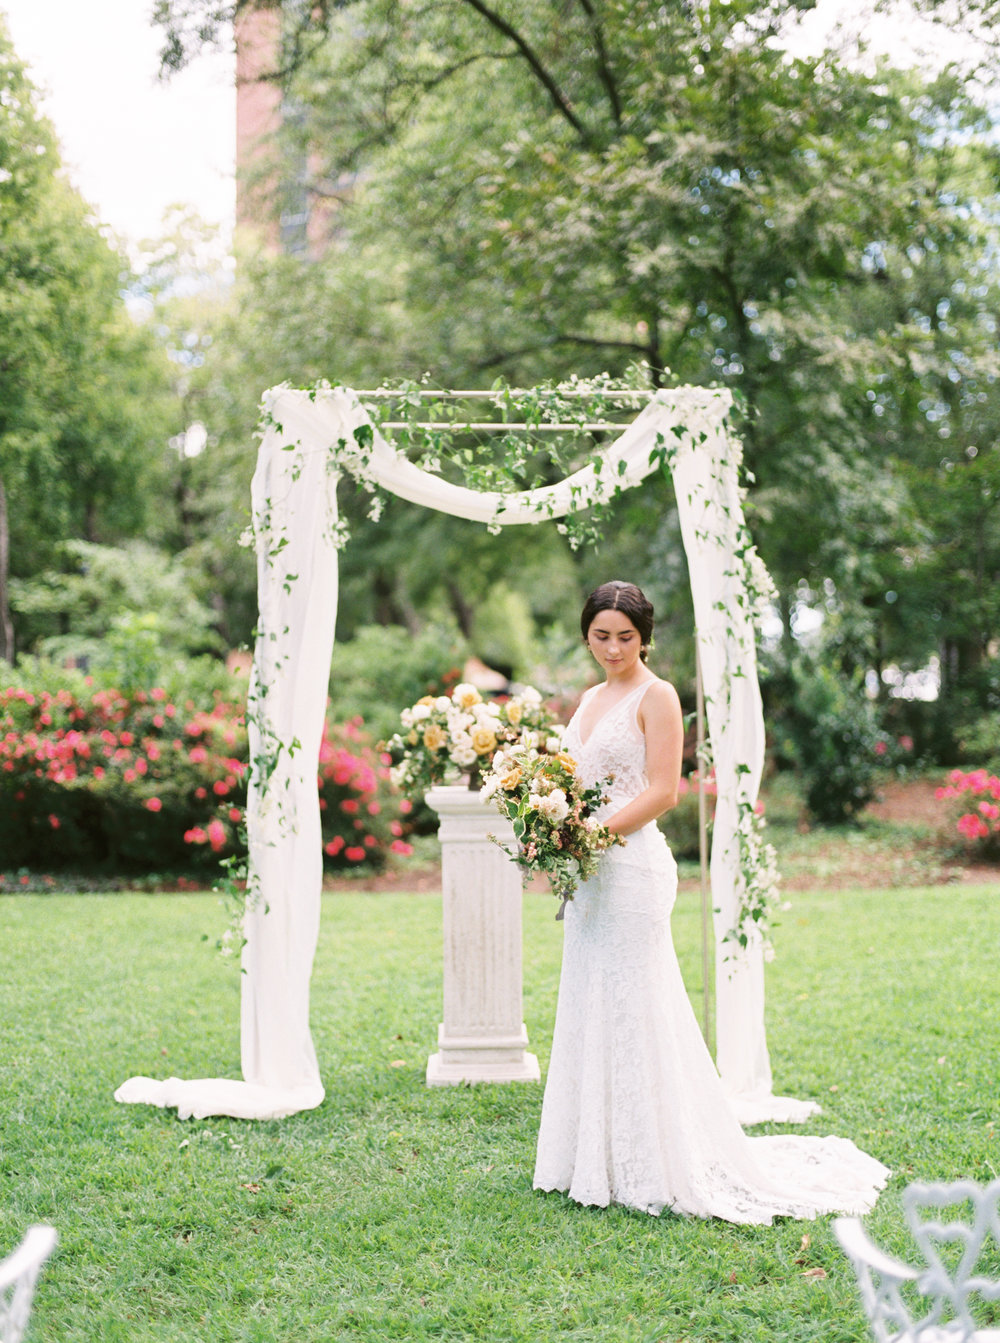 Callie Manion Photography_Garden Wedding Inspiration_129.jpg